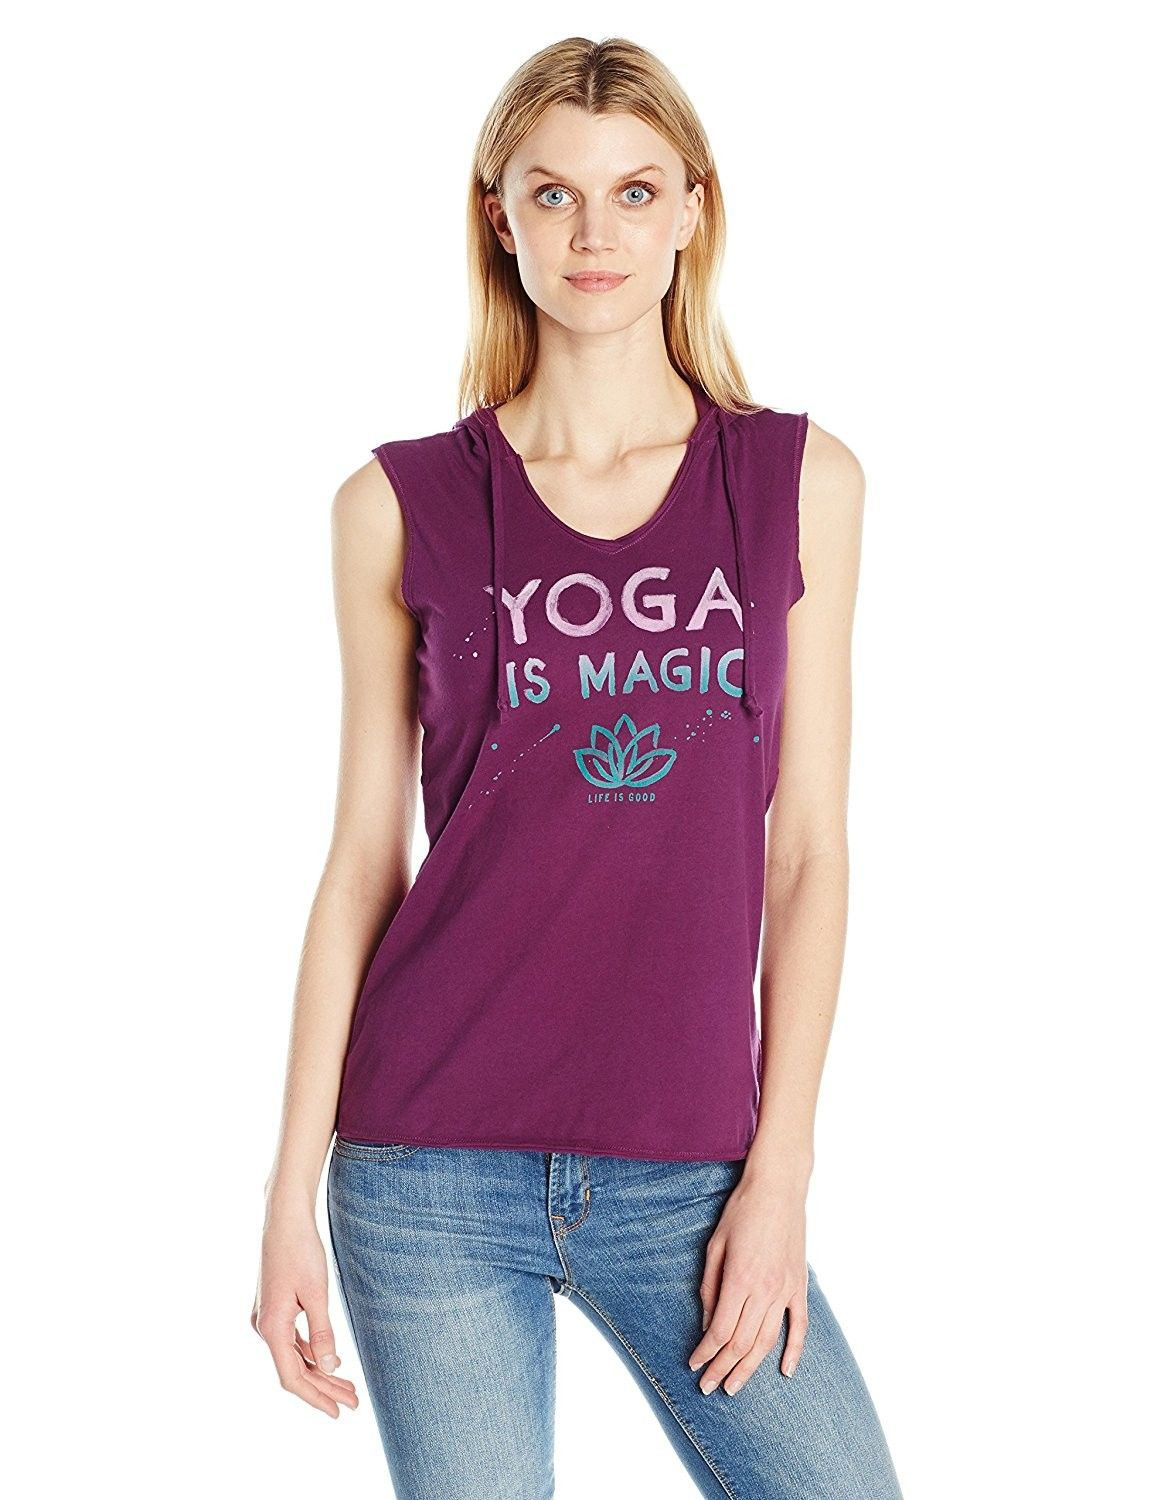 e2bba103 Women's Yoga Magic Sleeveless Hoodie - Deep Plum - CP12KNIUNJ3,Women's  Clothing, Active, Active Hoodies #women #fashion #clothing #style #sexy  #outfits .